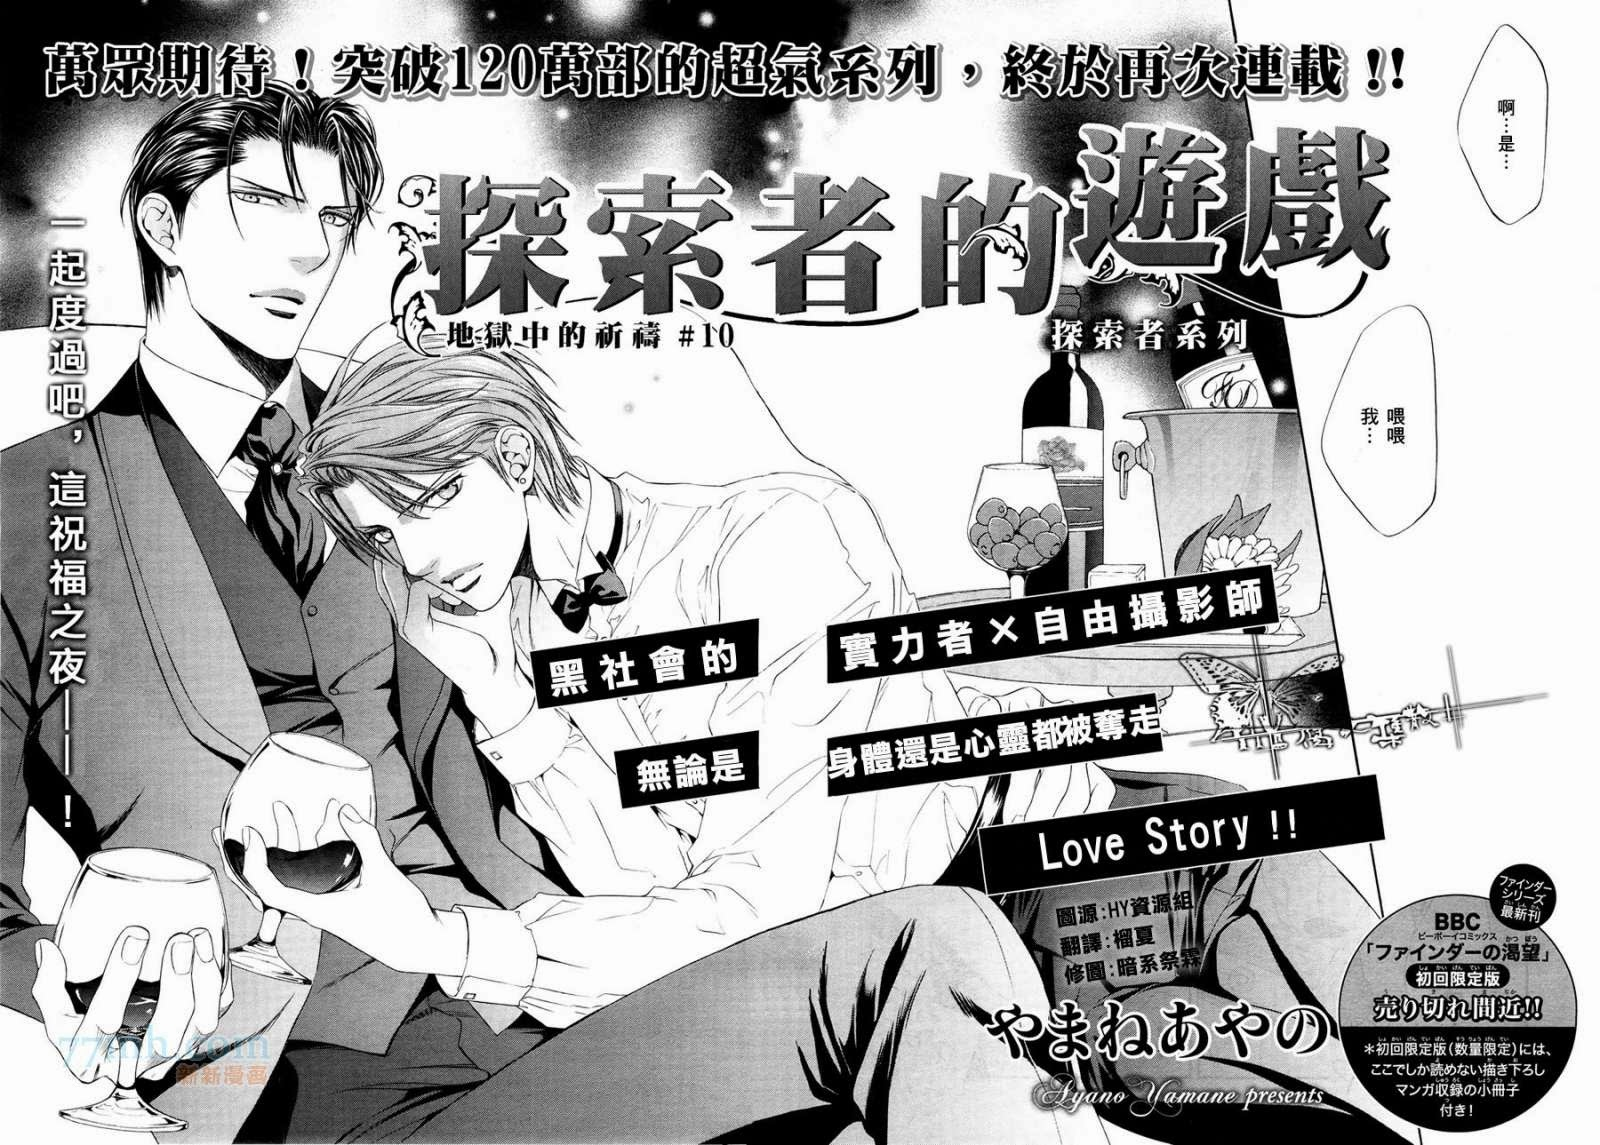 loveprize in viewfinder 43 raw 1) you're my loveprize in viewfinder (1st part of the main series, viewfinder 3 chapters : you're my loveprize in viewfinder, fixer & an extra, embrace the heat 2013 you're my loveprize in viewfinder 431 vol 07 pink gold extra apr 2, 2013 you're my loveprize in viewfinder 43 vol 07 pray in the abyss 8 mar 18, 2013.